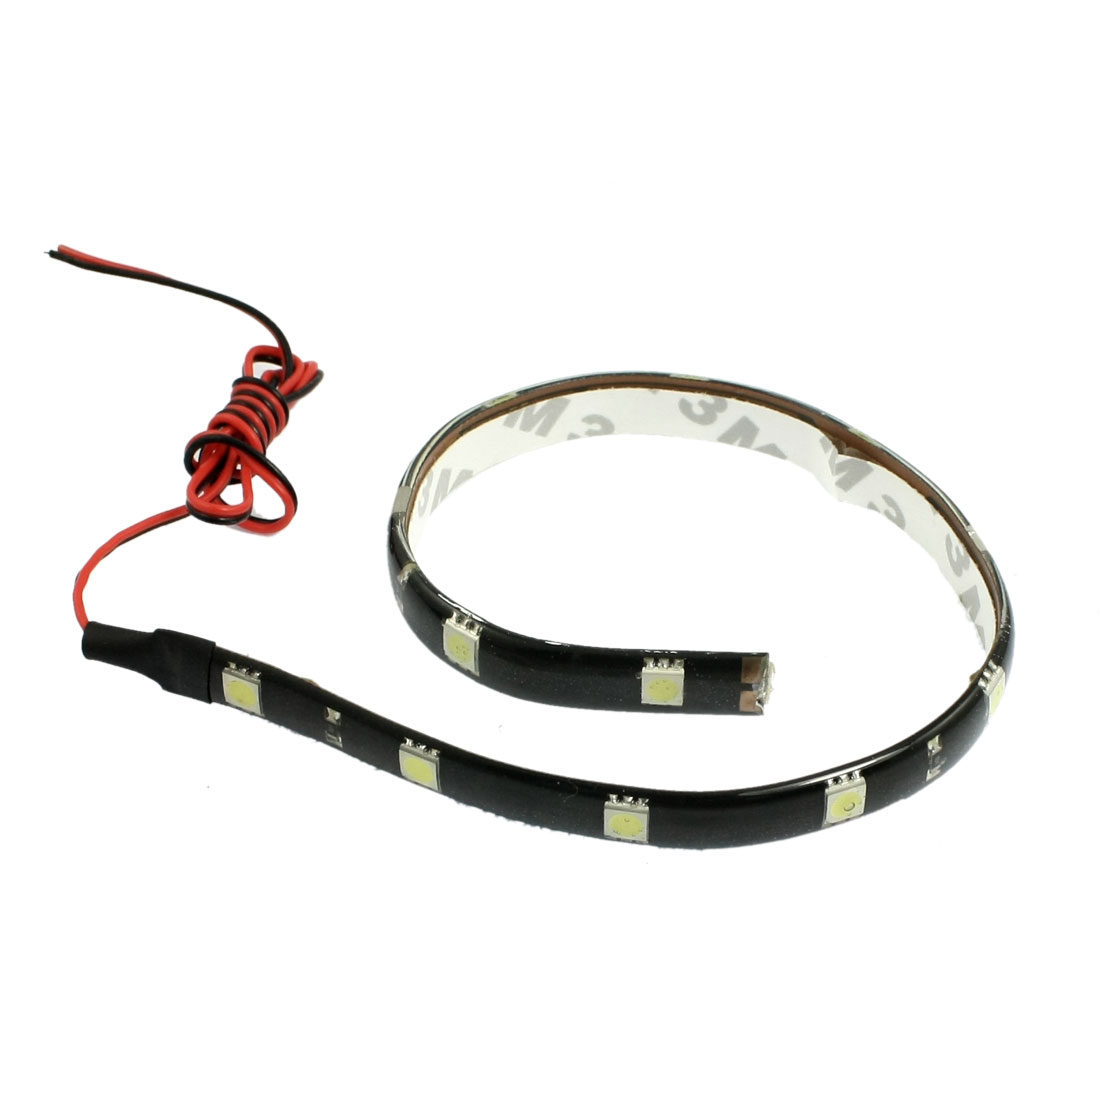 Car Auto DC 12V 5050 SMD White 12-LED Strip Light Lamp 30cm